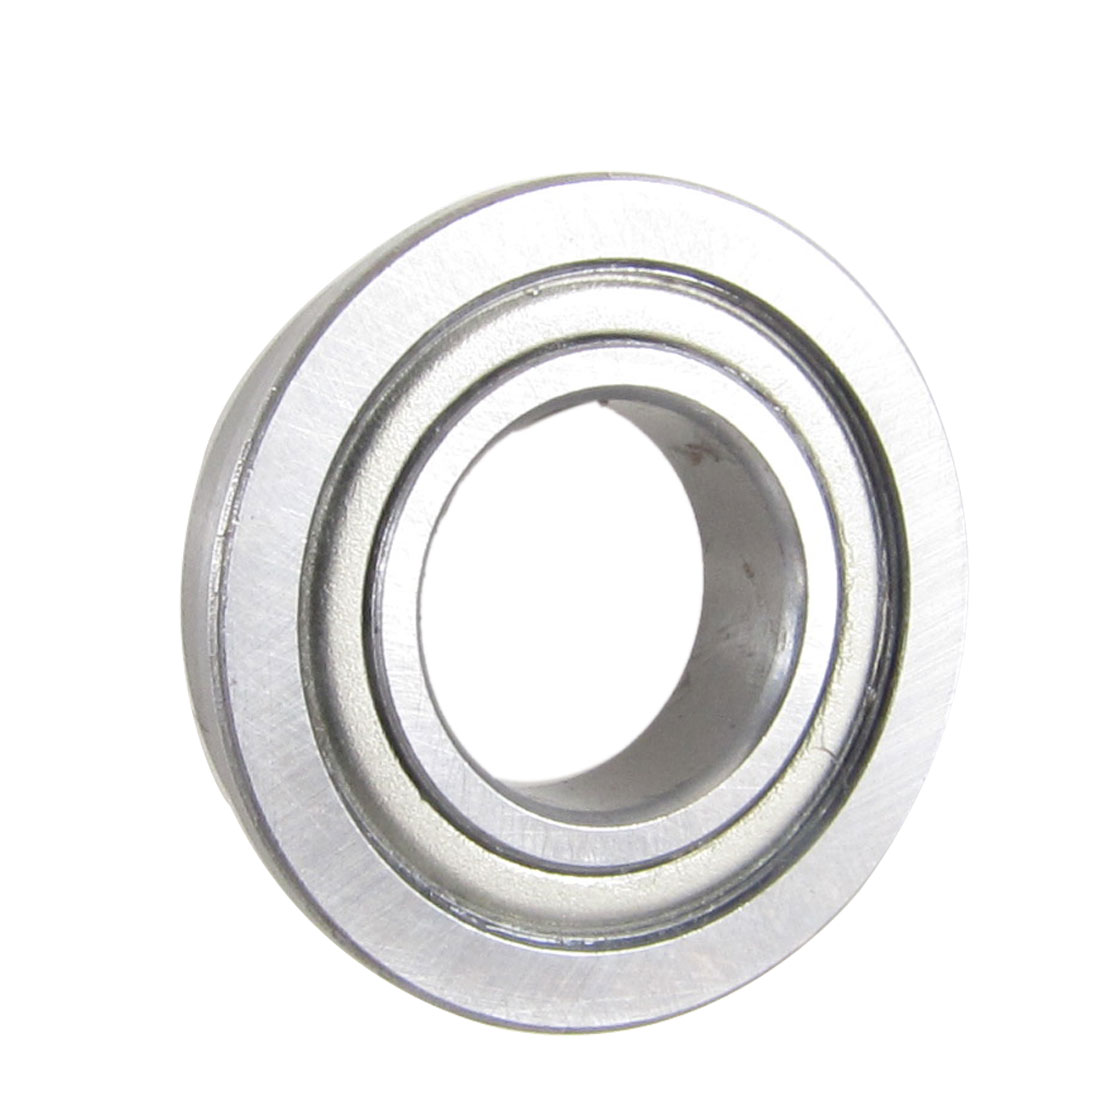 26mm x 15mm x 5mm Silver Tone Metal Shields Deep Groove Flanged Ball Bearing